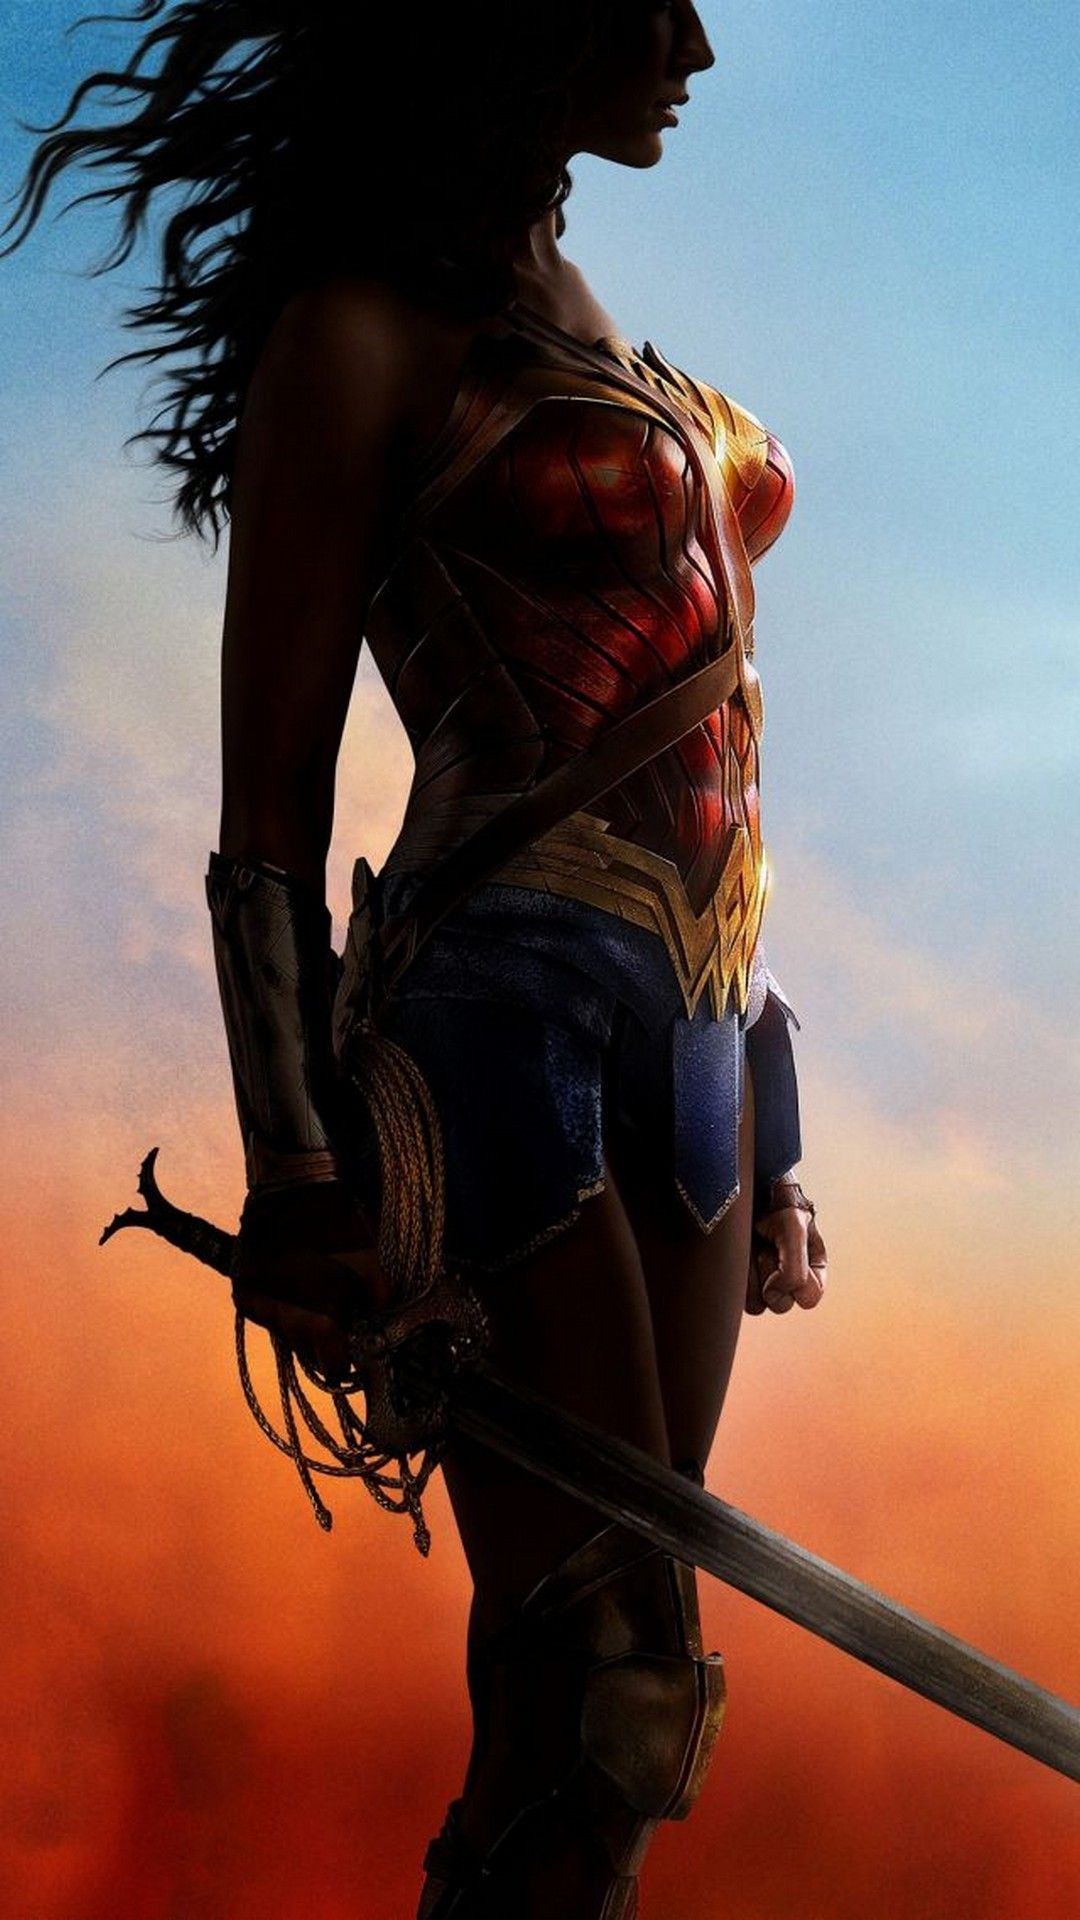 wonder woman wallpaper for mobile iphonewallpapers wonder woman